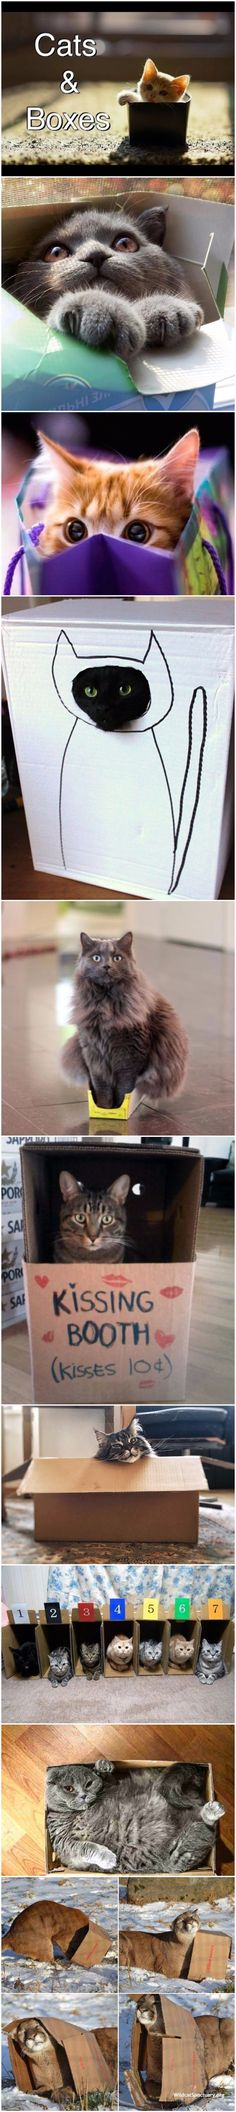 Funny cats in boxes collection